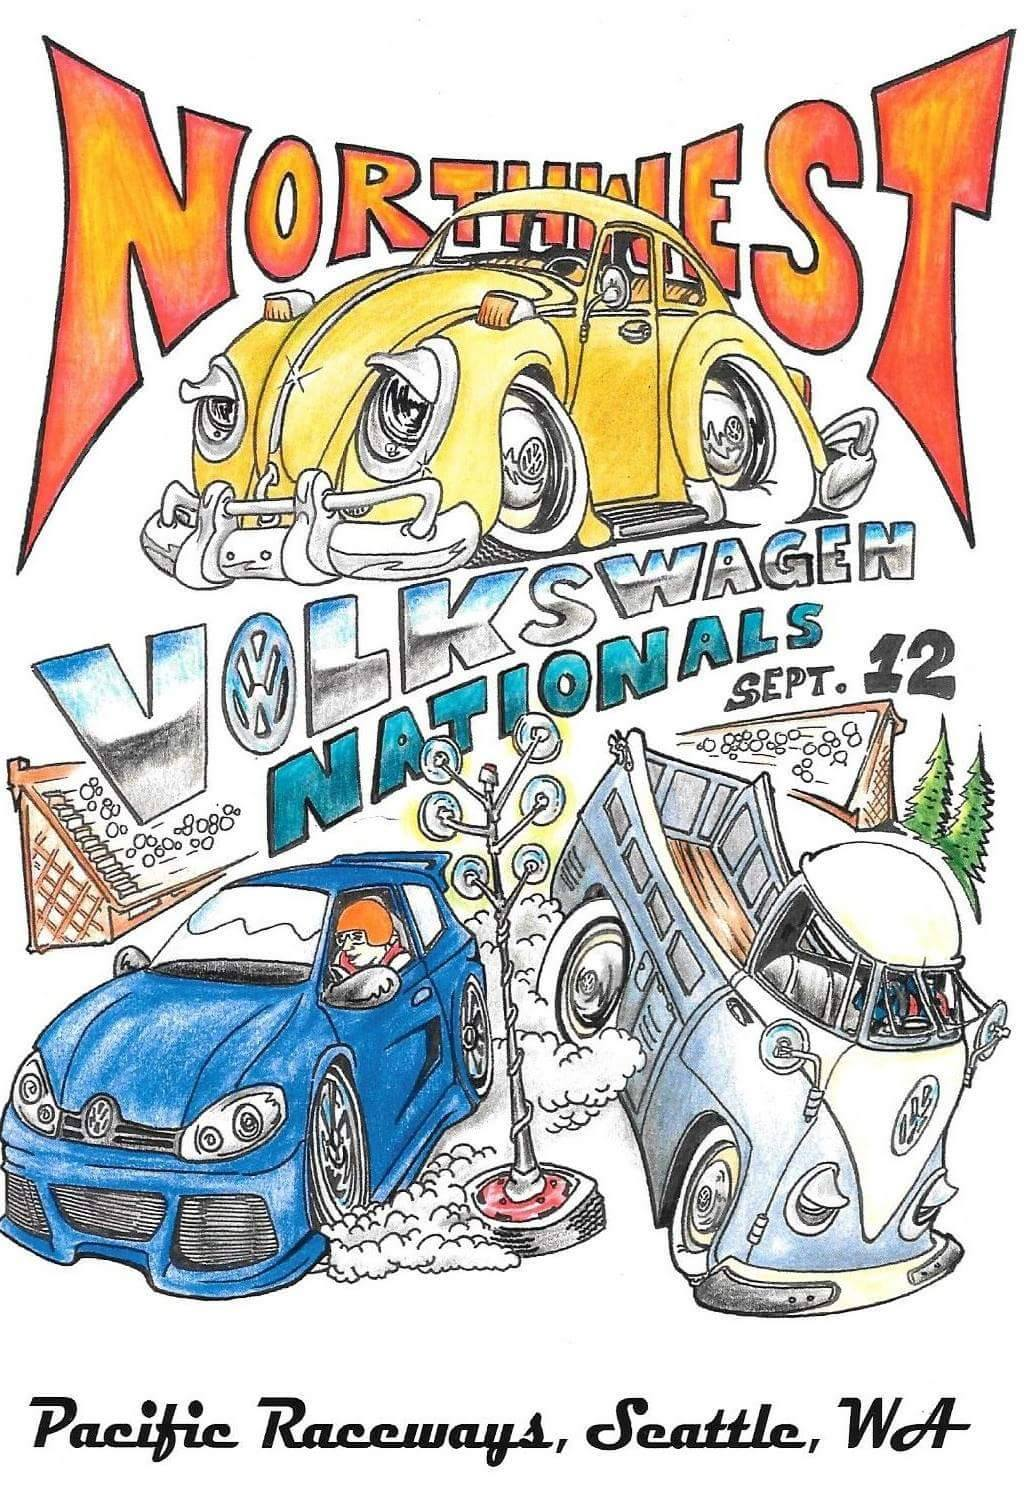 Northwest Volkswagen Nationals